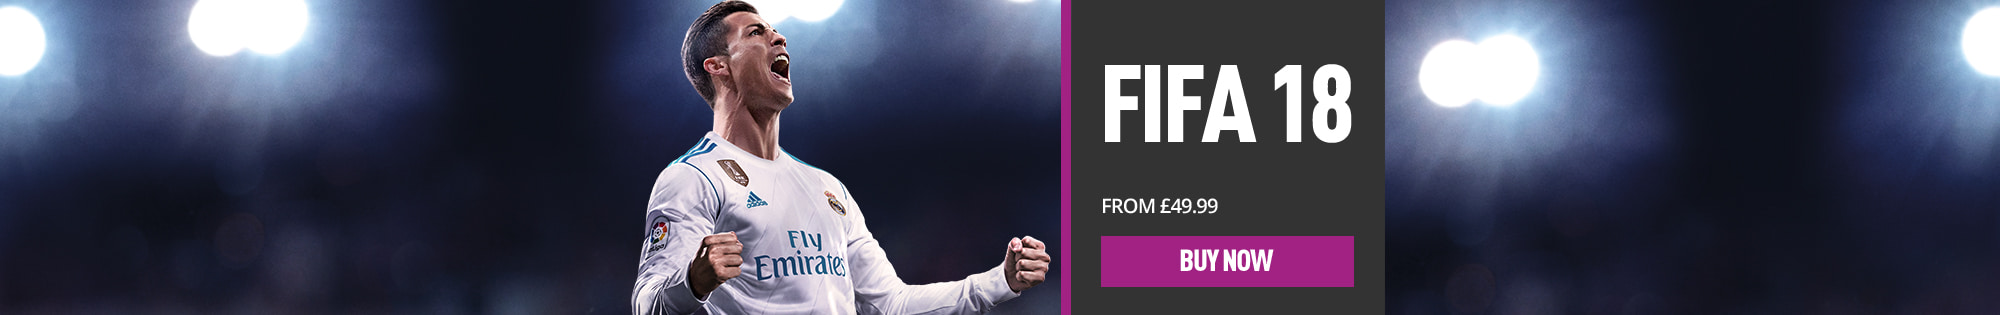 Last chance: Pre-order FIFA 18 now! - Homepage Banner